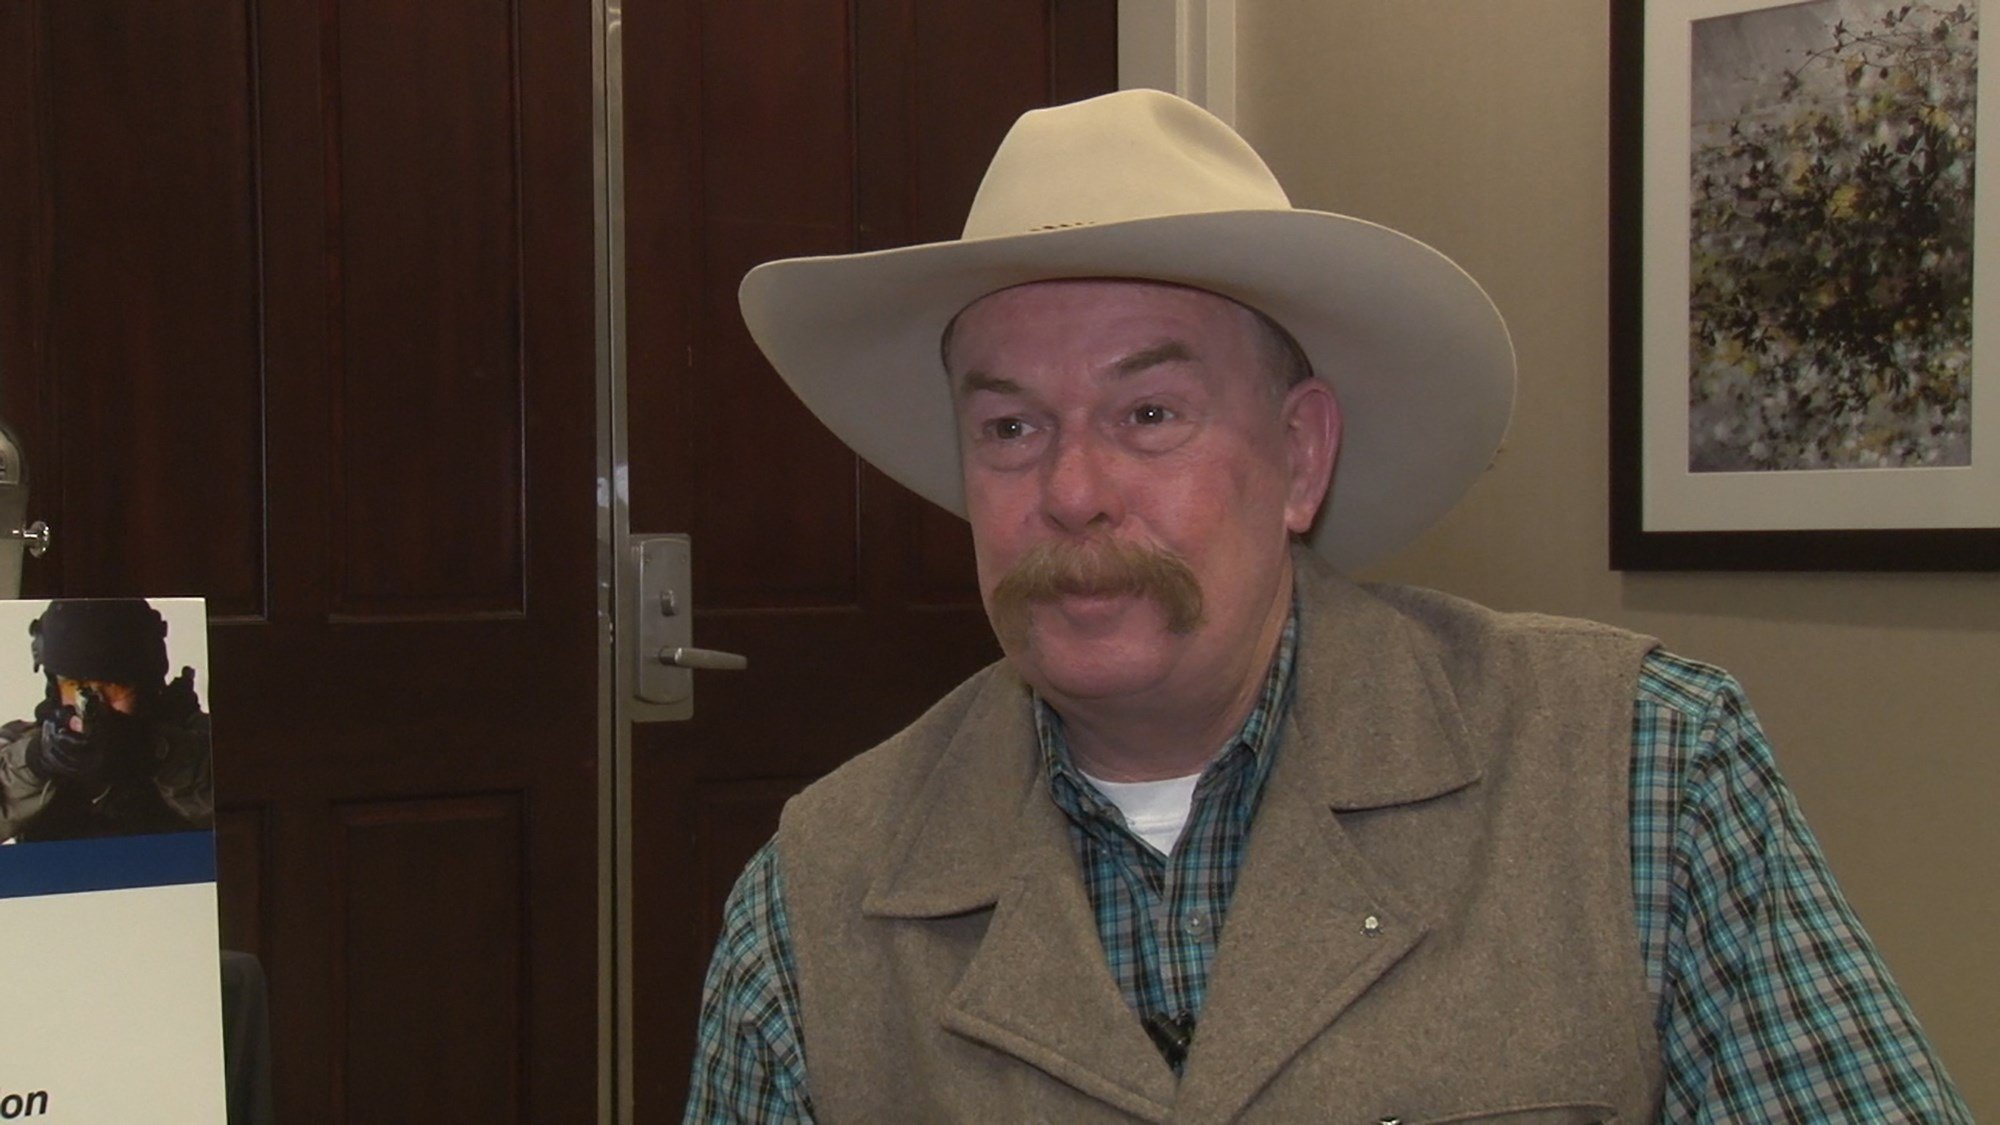 While some groups are criticizing the Trump administration's call for a border wall as costly and counterproductive, Yuma County Sheriff Leon Wilmot said the wall that went up in his county has worked well. (Source: Tyler Fingert/Cronkite News)